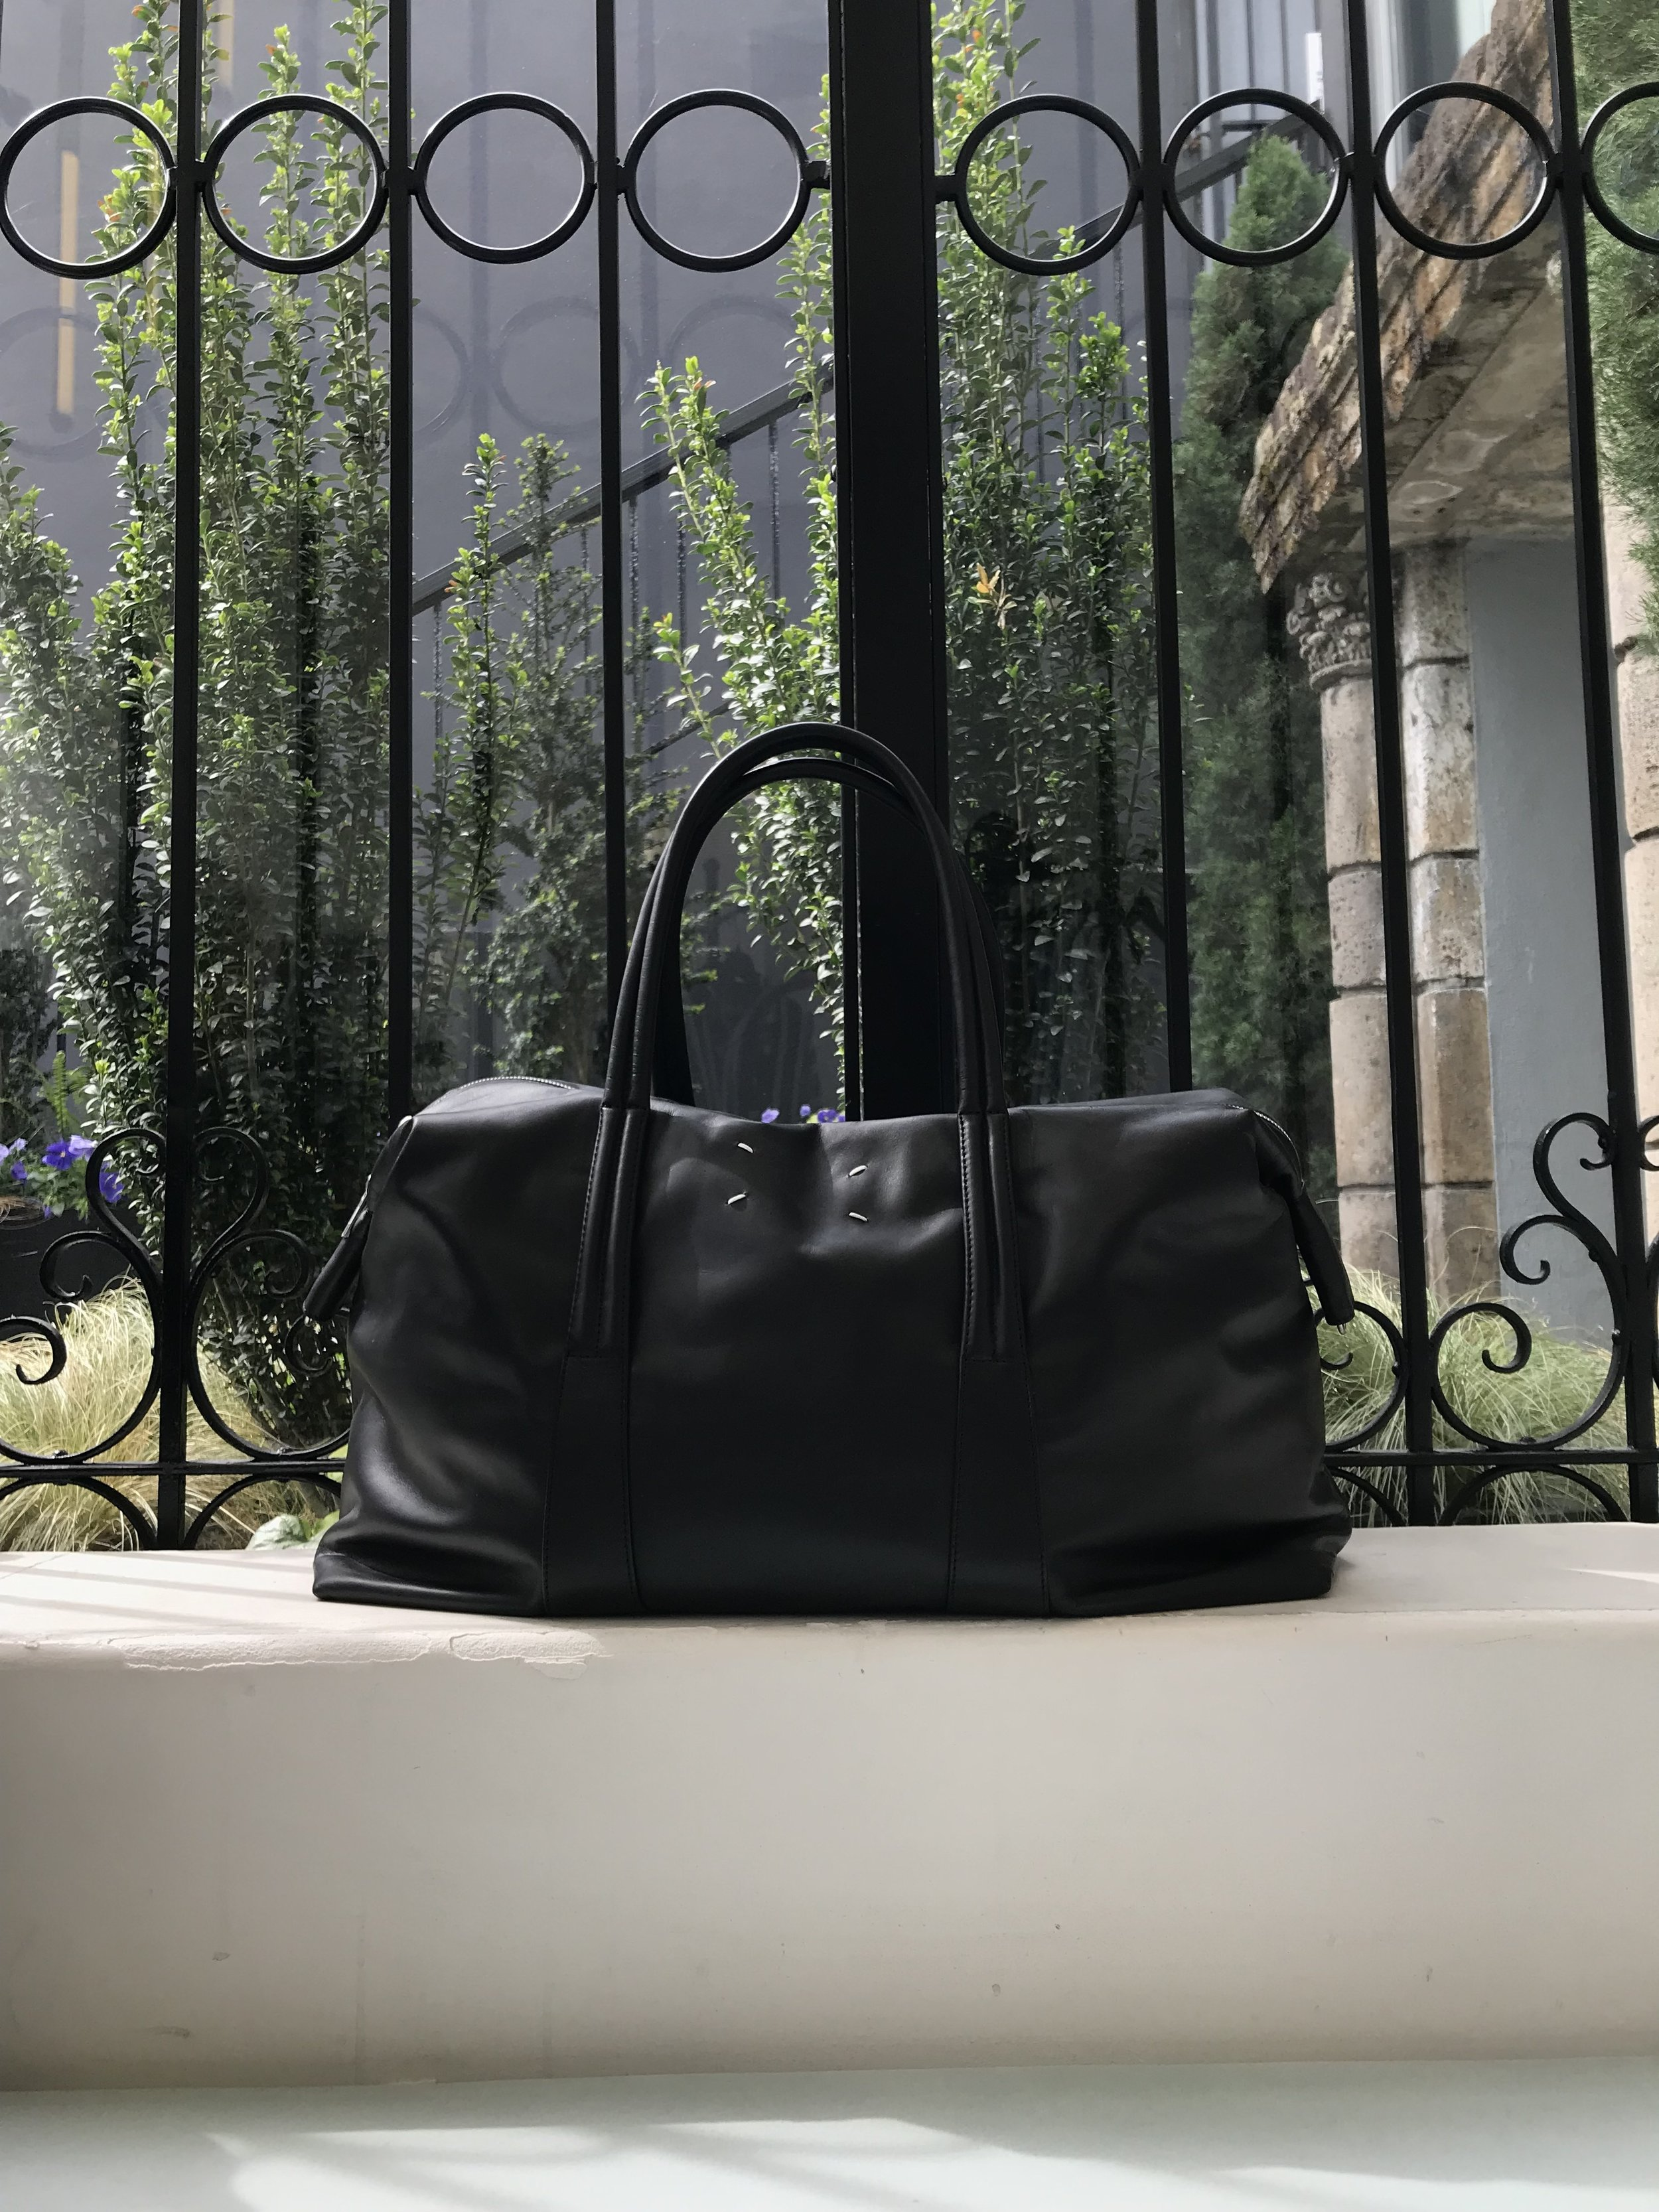 . . . but only if she can bring this Maison Margiela duffle bag.